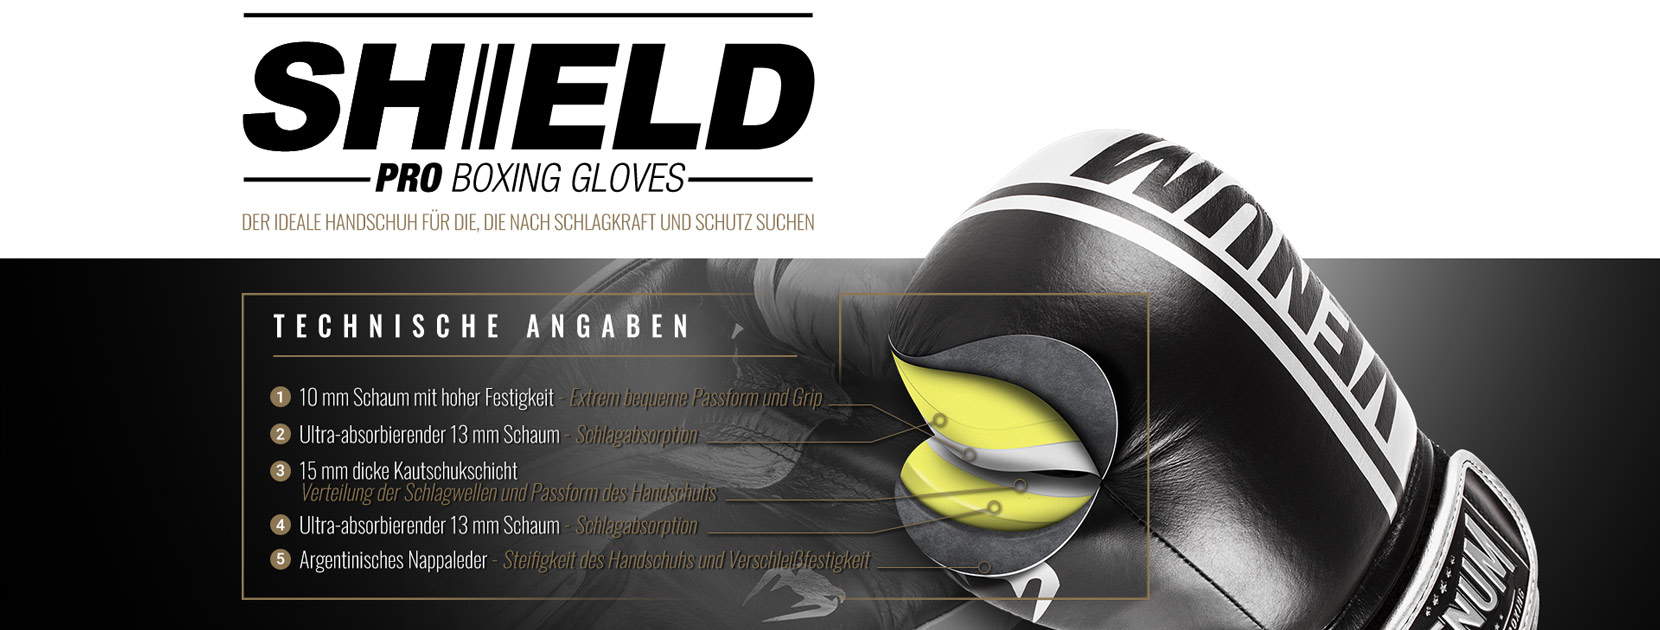 Professionelle Boxhandschuhe Shield